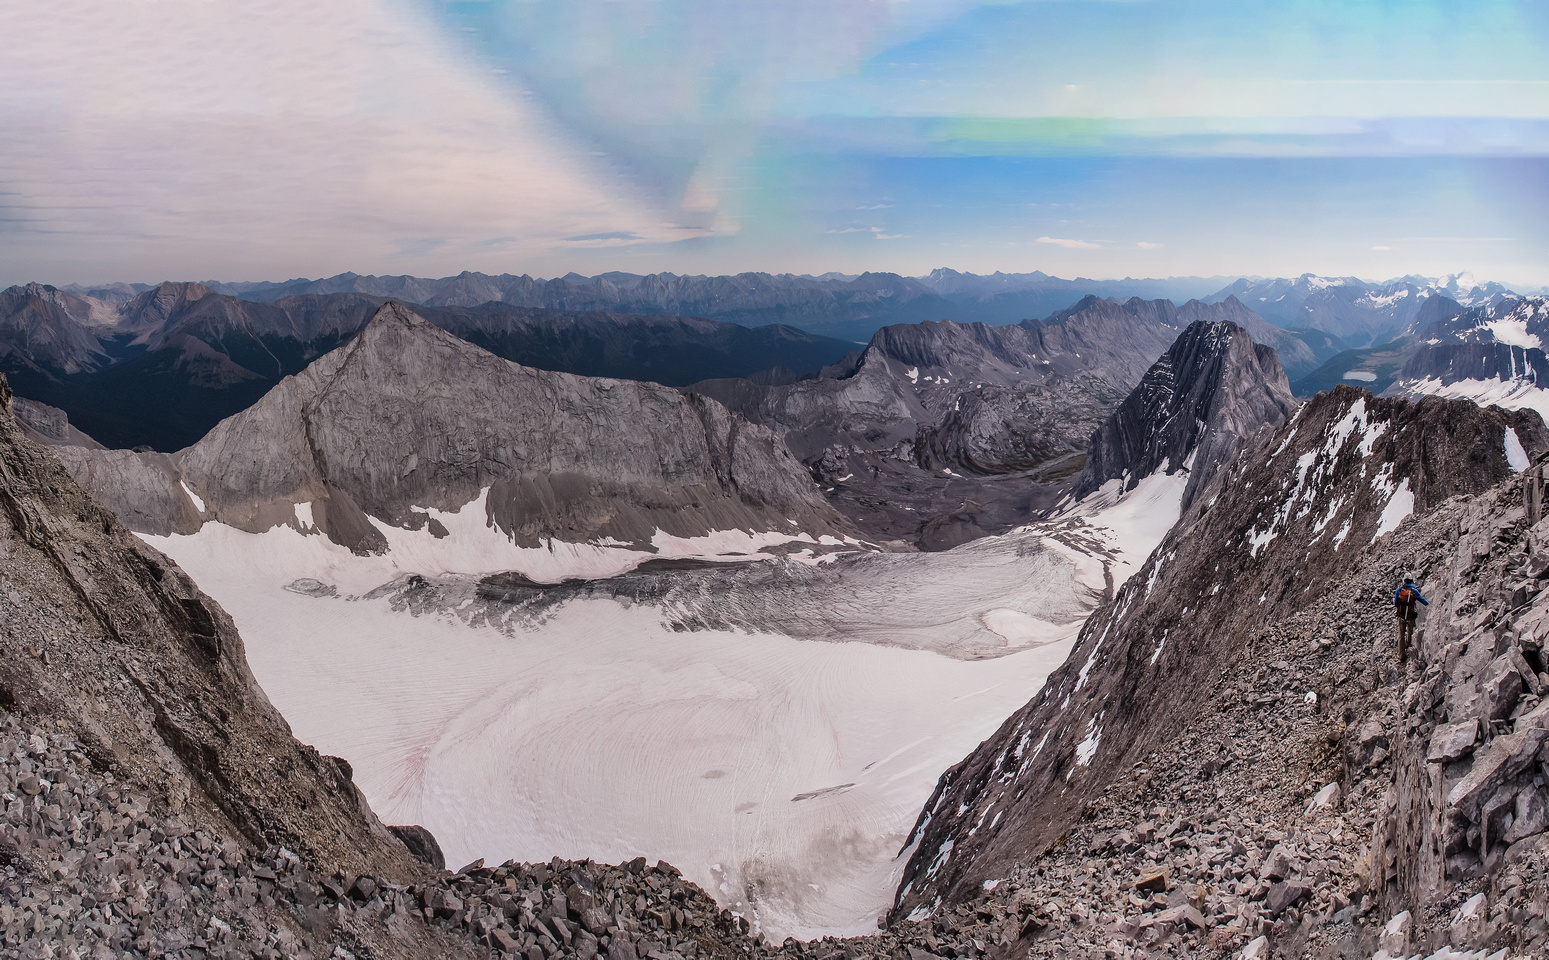 Traversing off the ridge to the north with nice views of Mount Smith Dorrien.